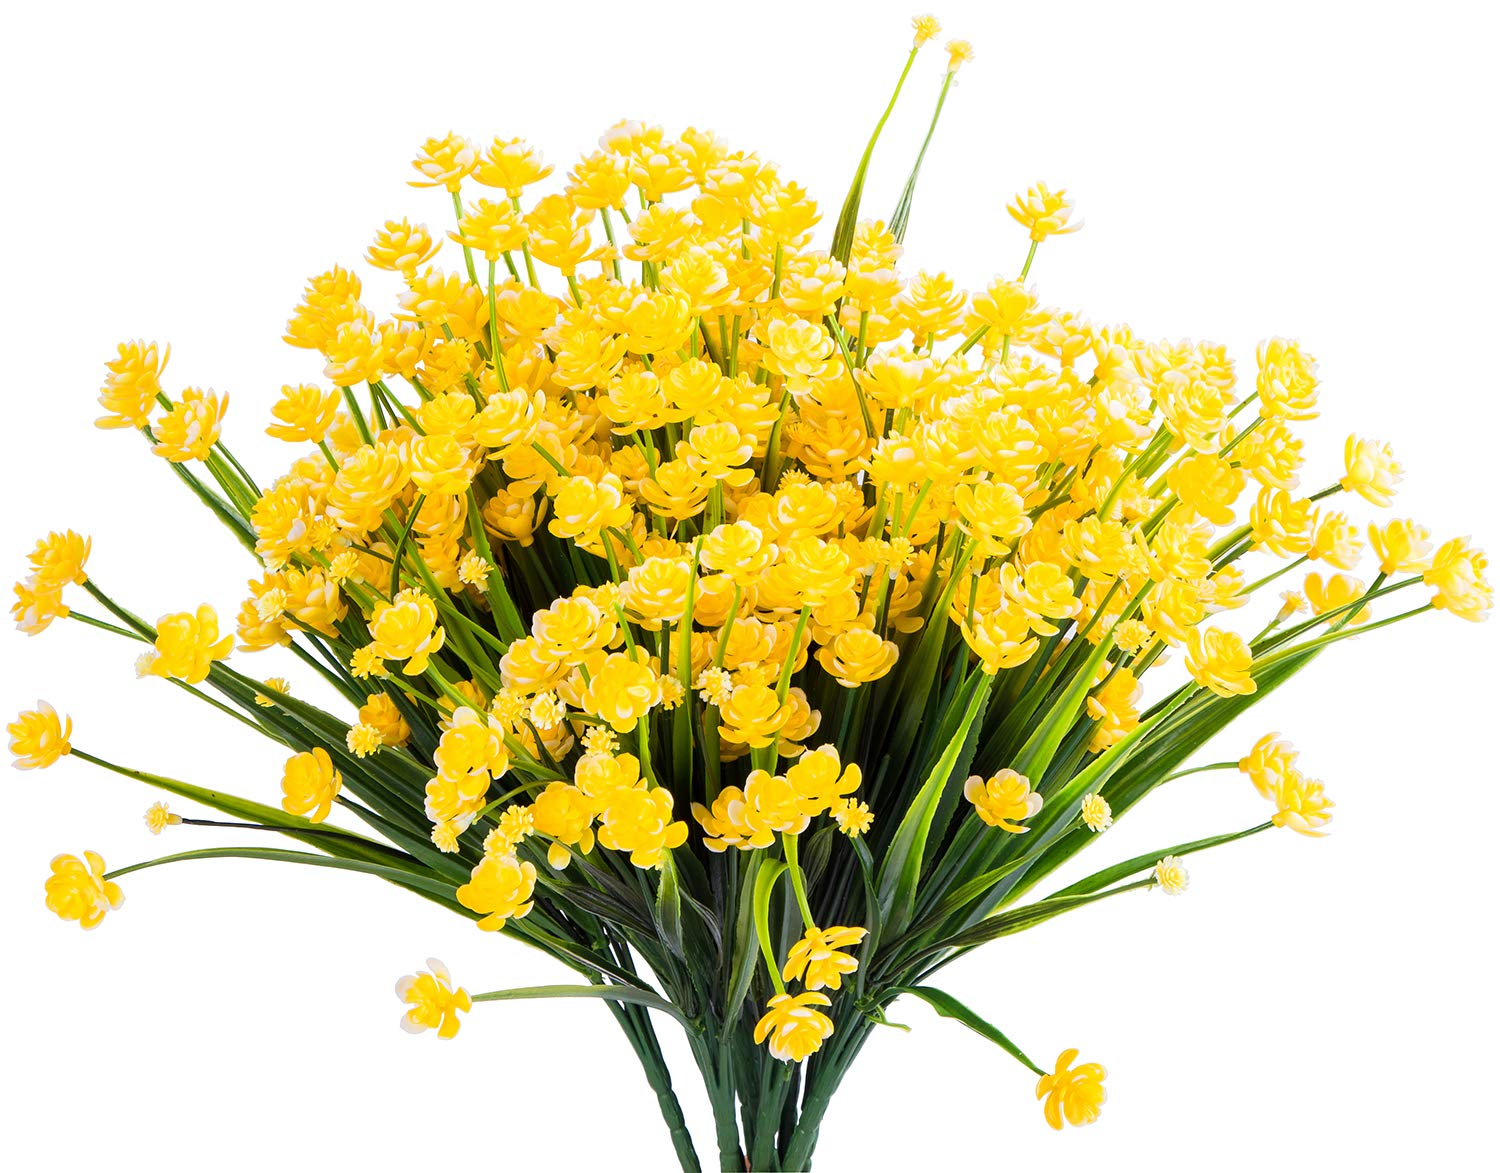 Foraineam 10 Bundles Yellow Daffodils Artificial Flowers Fake Plants Plastic Bushes Greenery Shrubs Fence Indoor Outdoor Hanging Planter Home Garden Decor